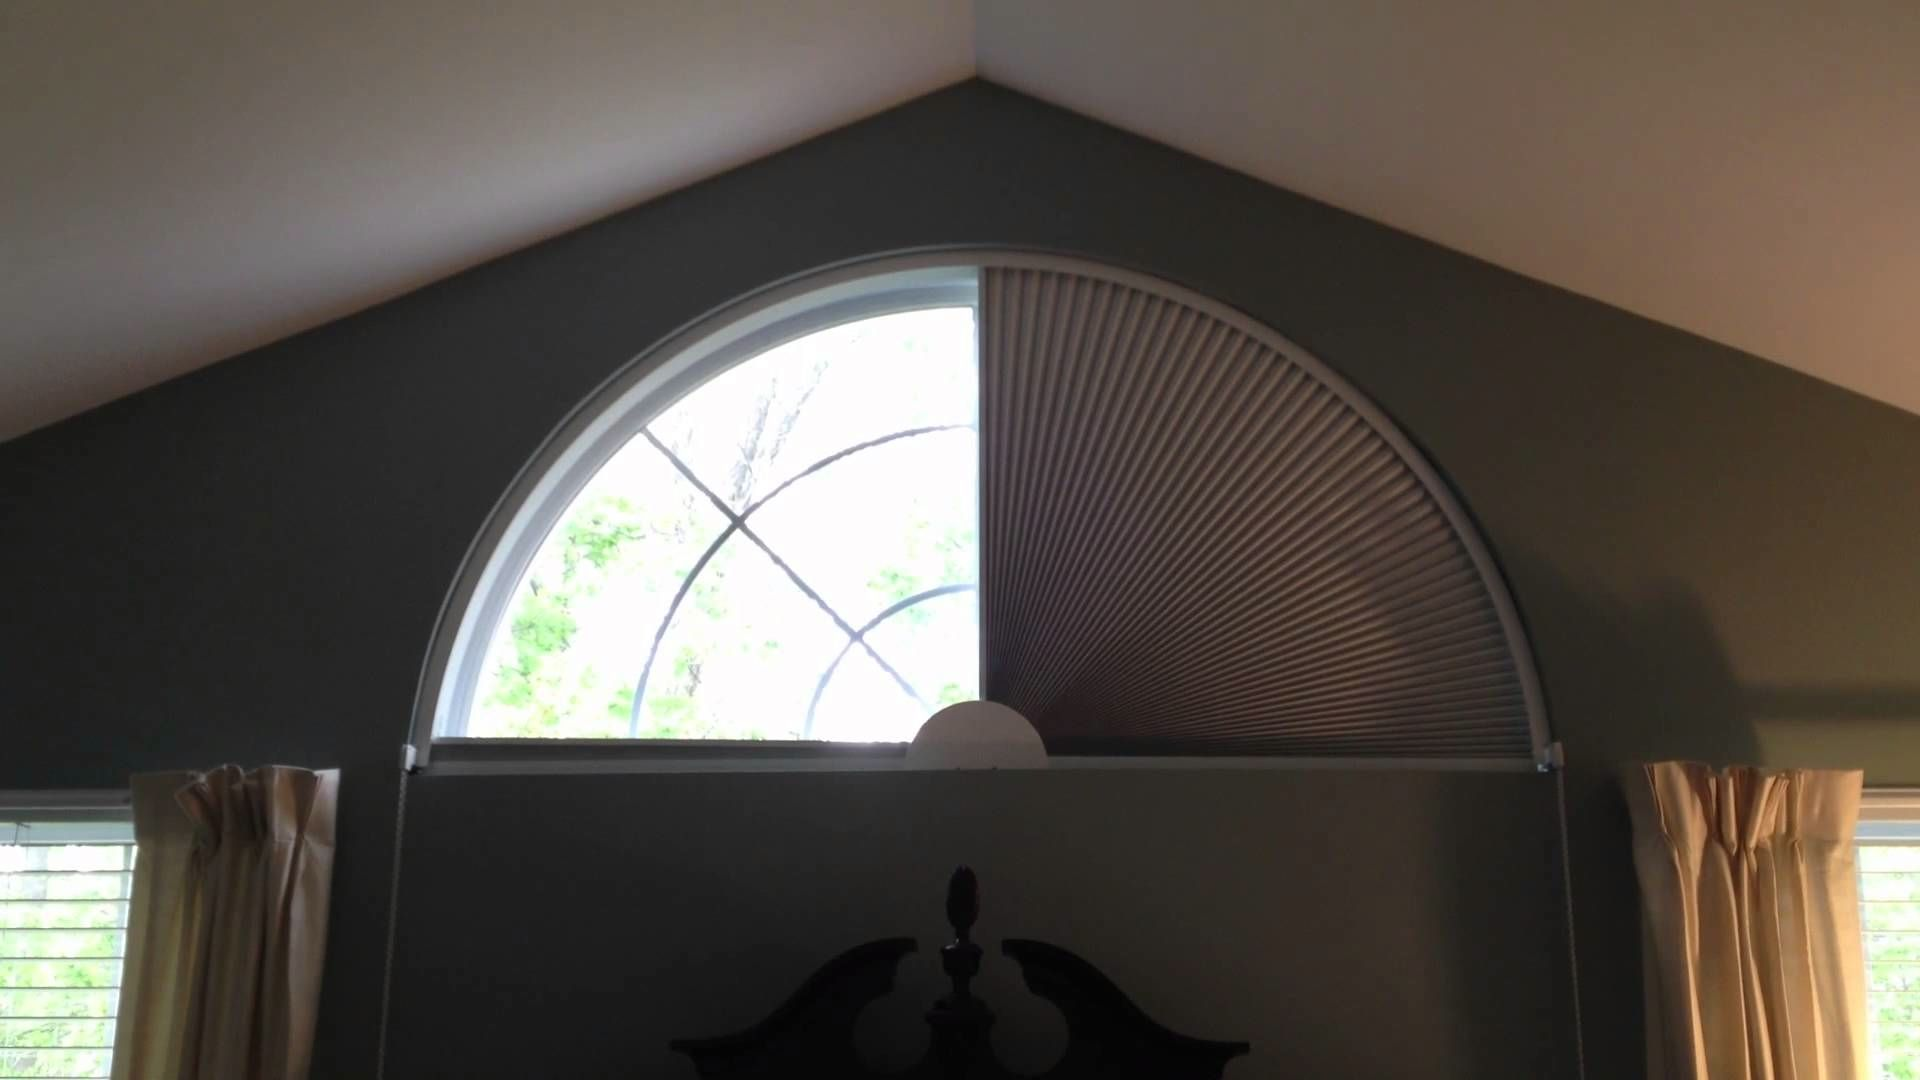 Windows Blinds For Half Circle Windows Decorating Custom Roman In Measurements 1024 X 768 Blackout Blind For Round Window Decor Moderne Chambre Parents Moderne